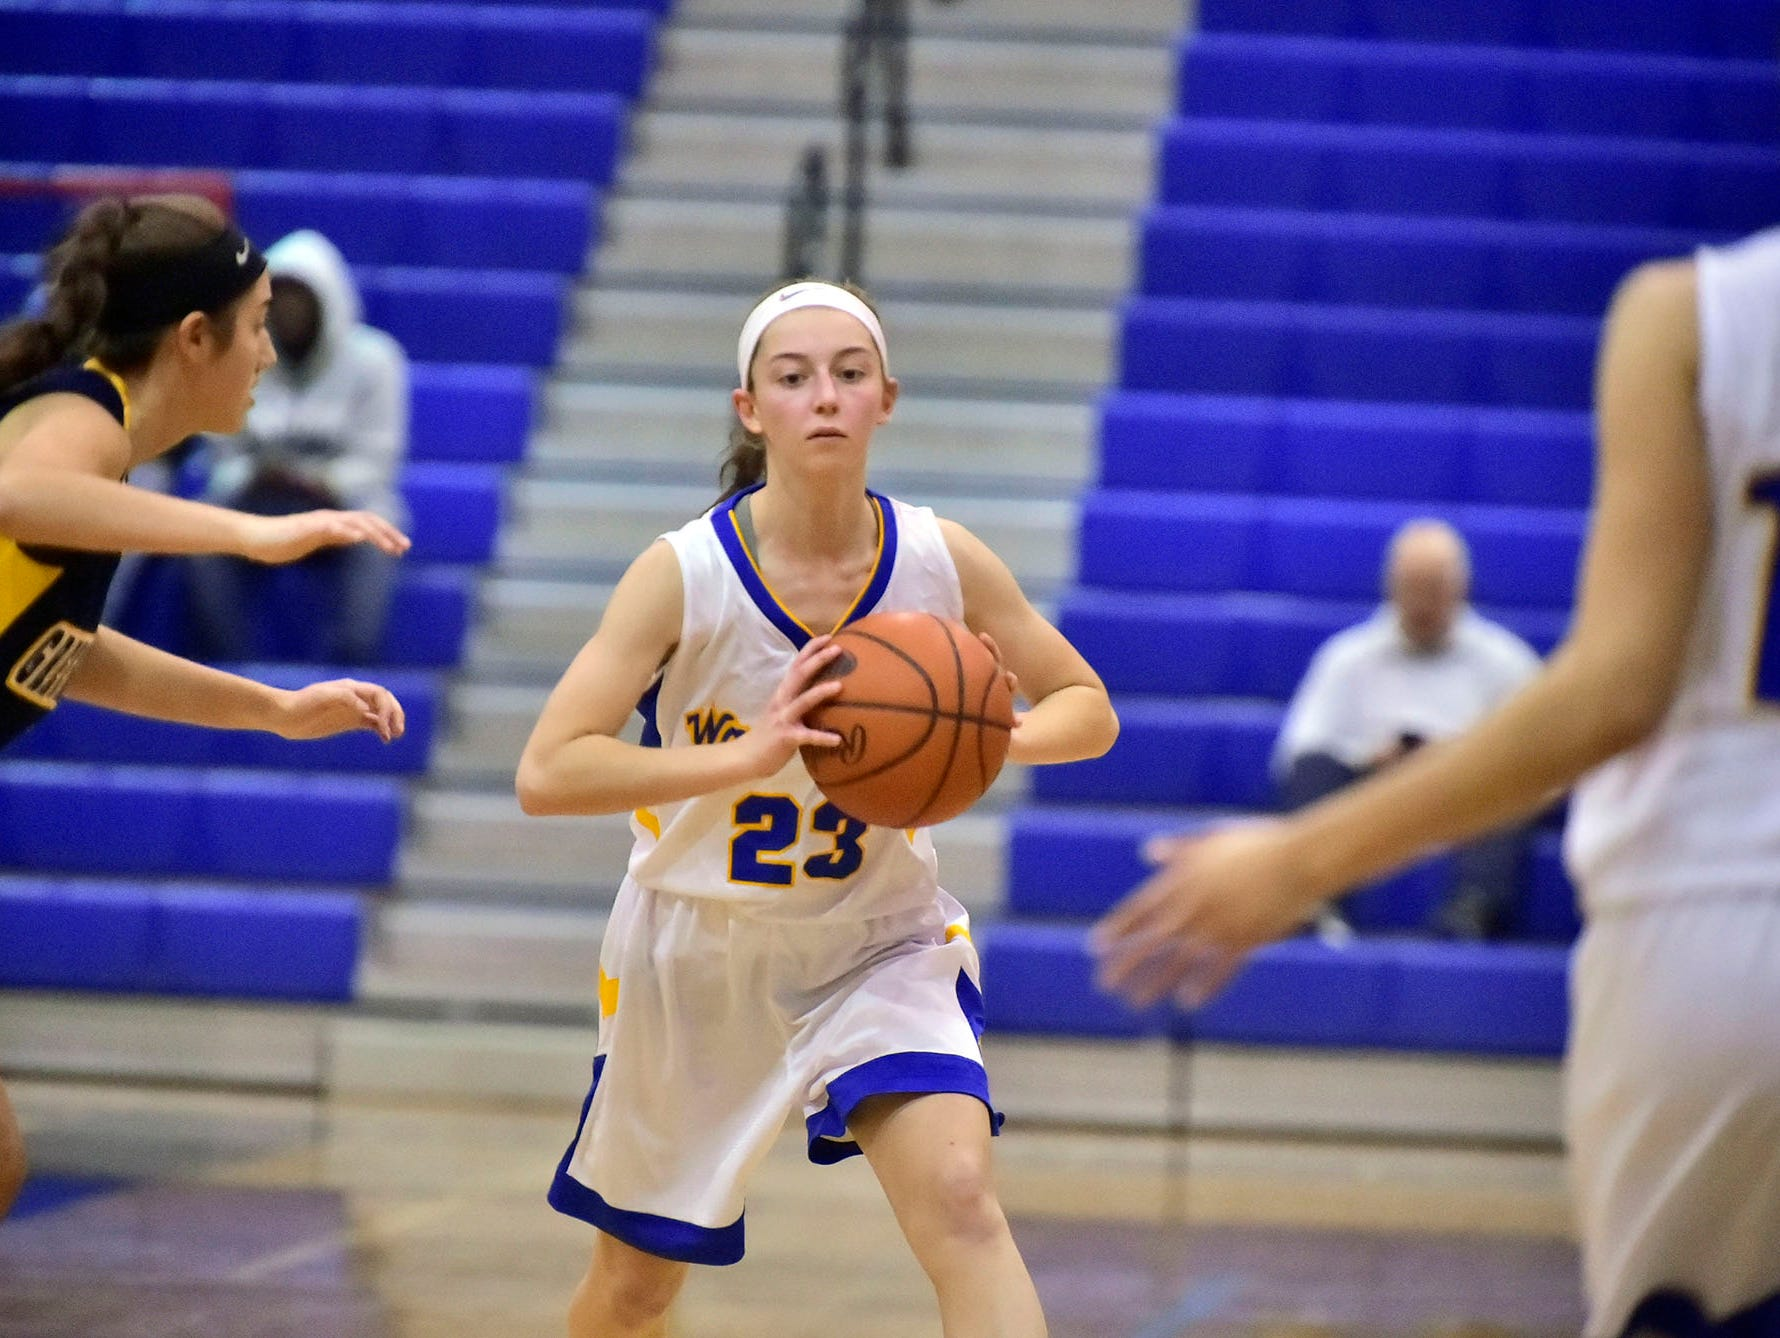 Waynesboro's Emma Steiger (23) looks to pass during the Franklin County Tip-Off Tournament, Friday, Dec. 7, 2018.